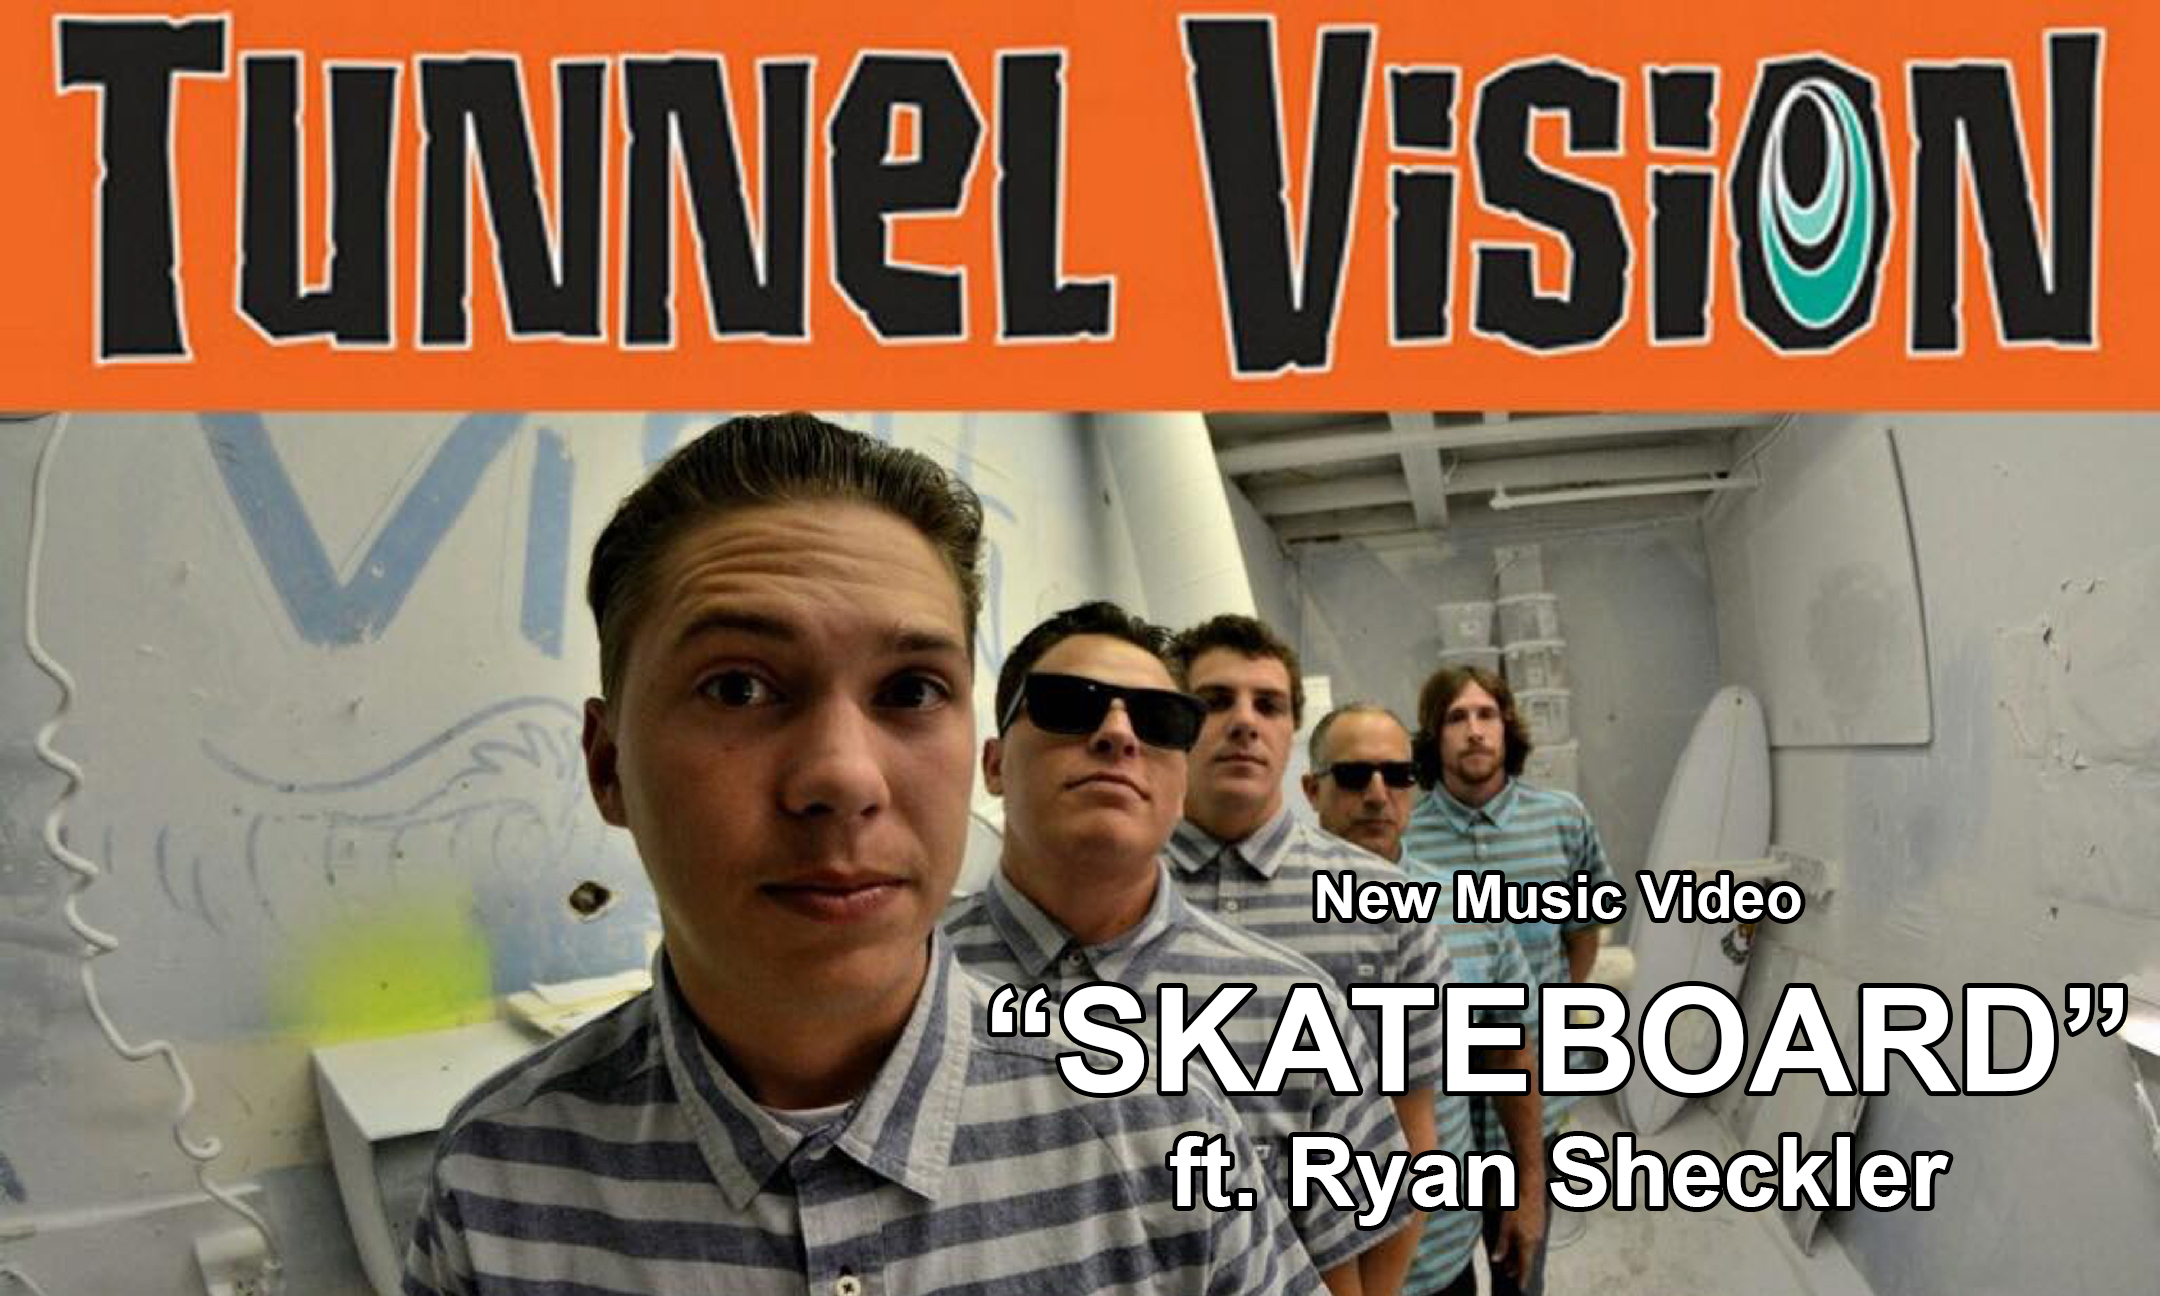 Tunnel Vision – Skateboard ft Ryan Sheckler #MusicVideo